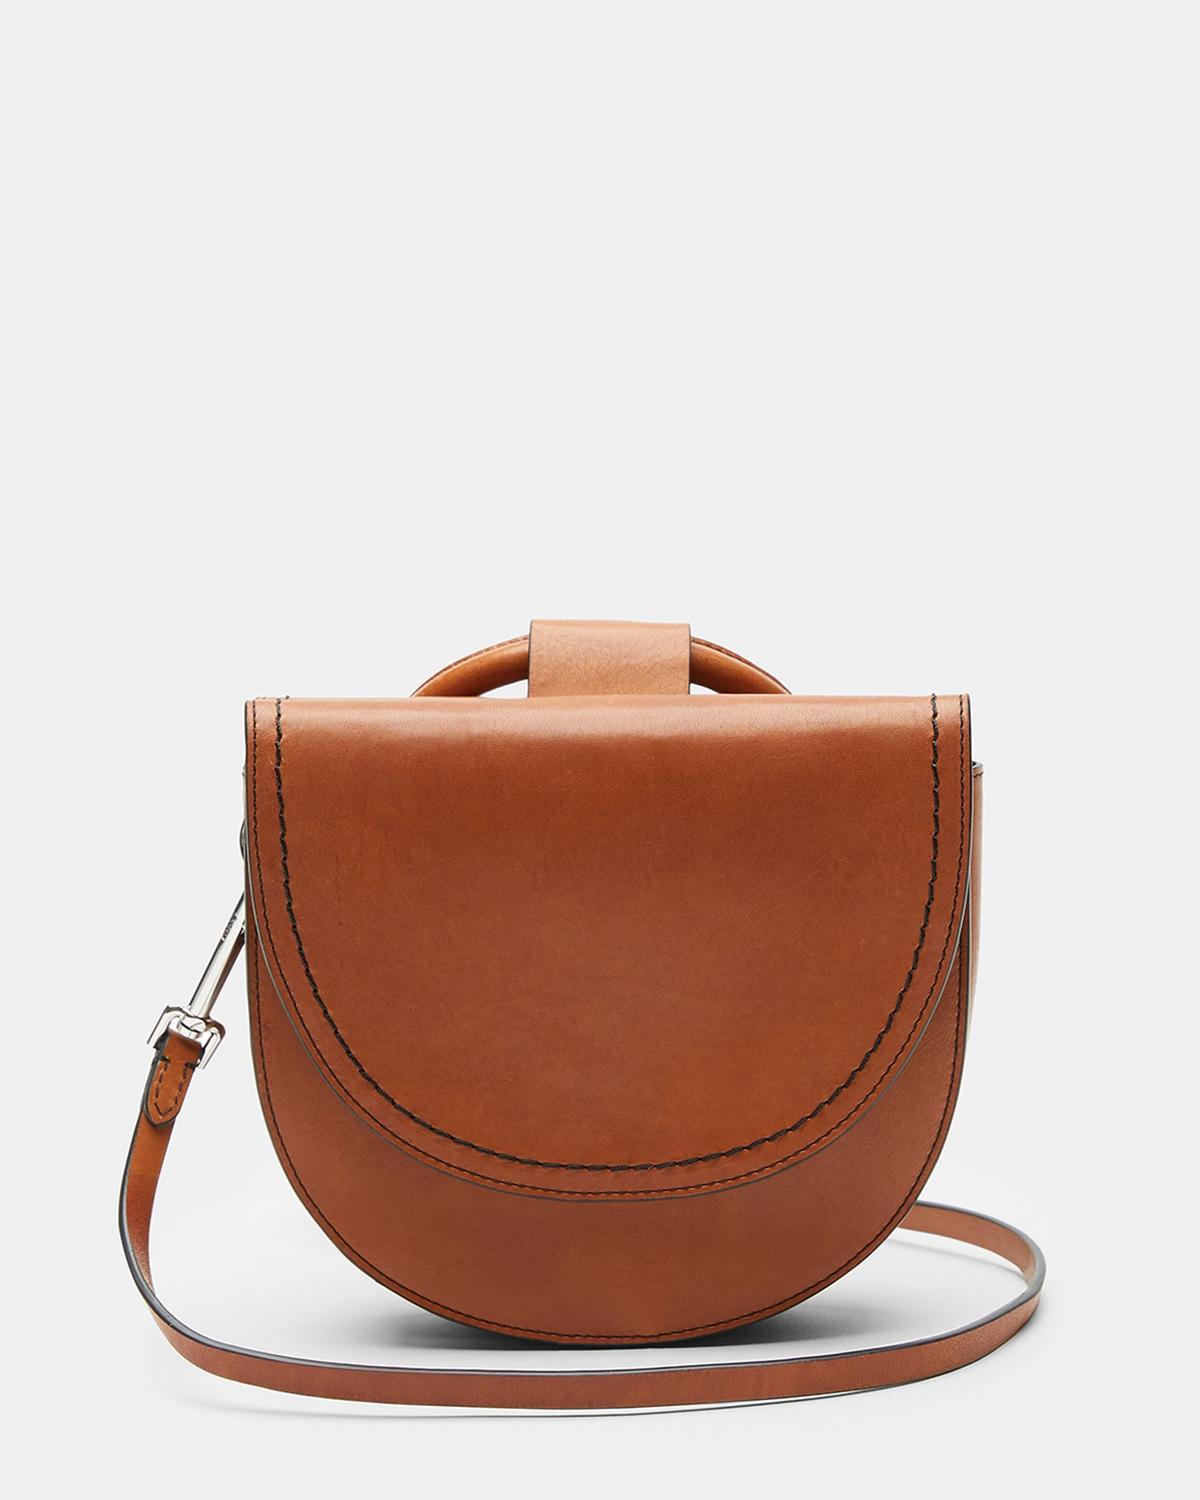 Whitney Bag With Leather Hoop in Nappa Leather